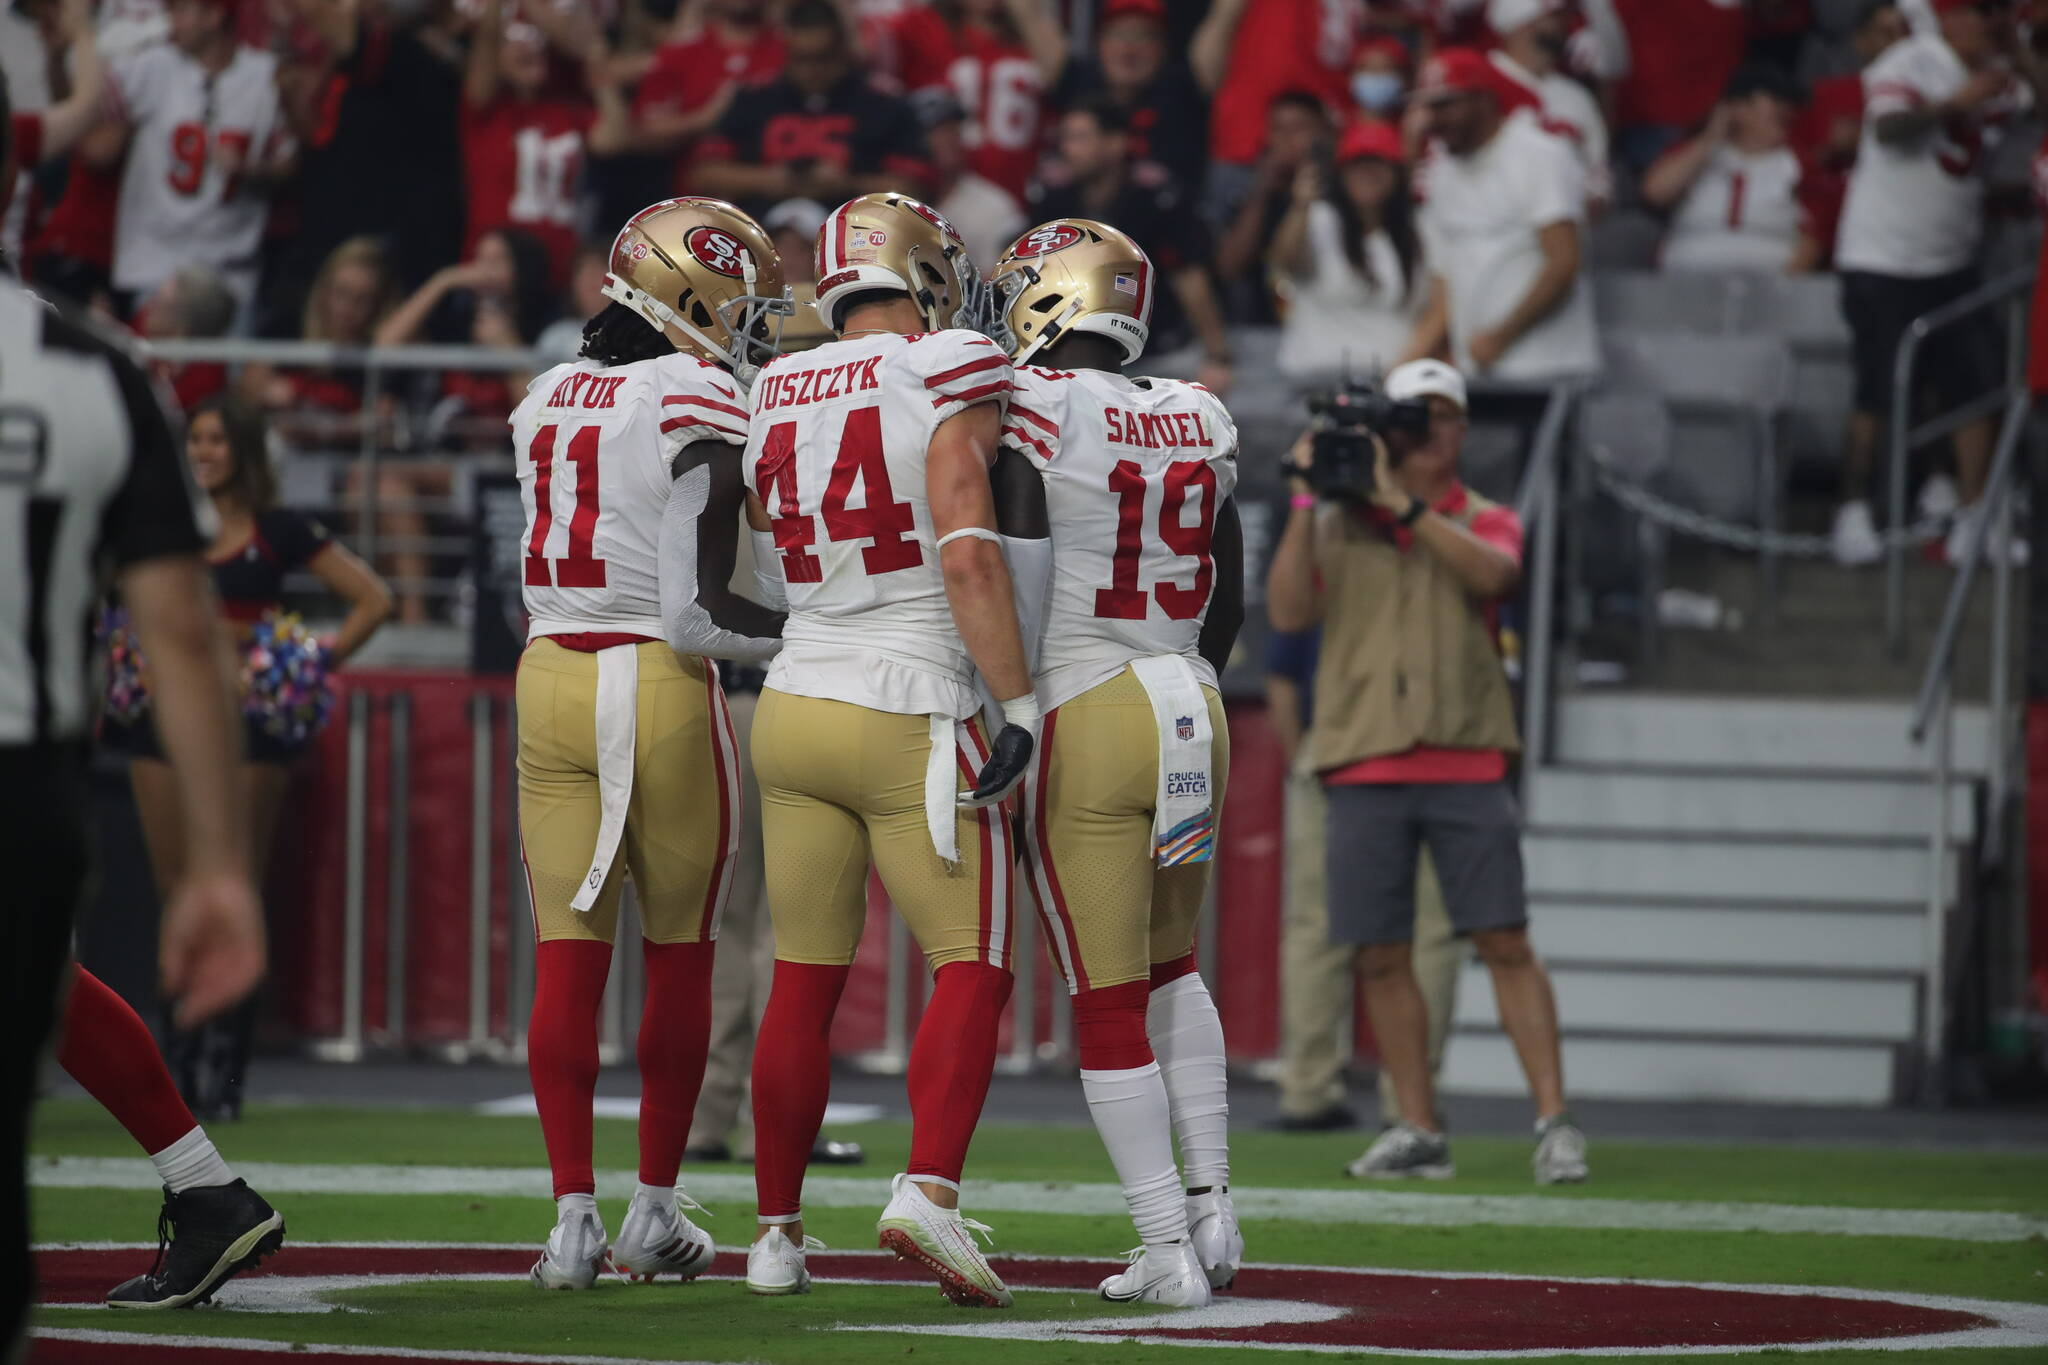 The 49ers lost a tough game at Arizona Sunday, 17-10, but San Francisco saw a good amount of teamwork develop.<ins> (Courtesy San Francisco49ers)</ins>